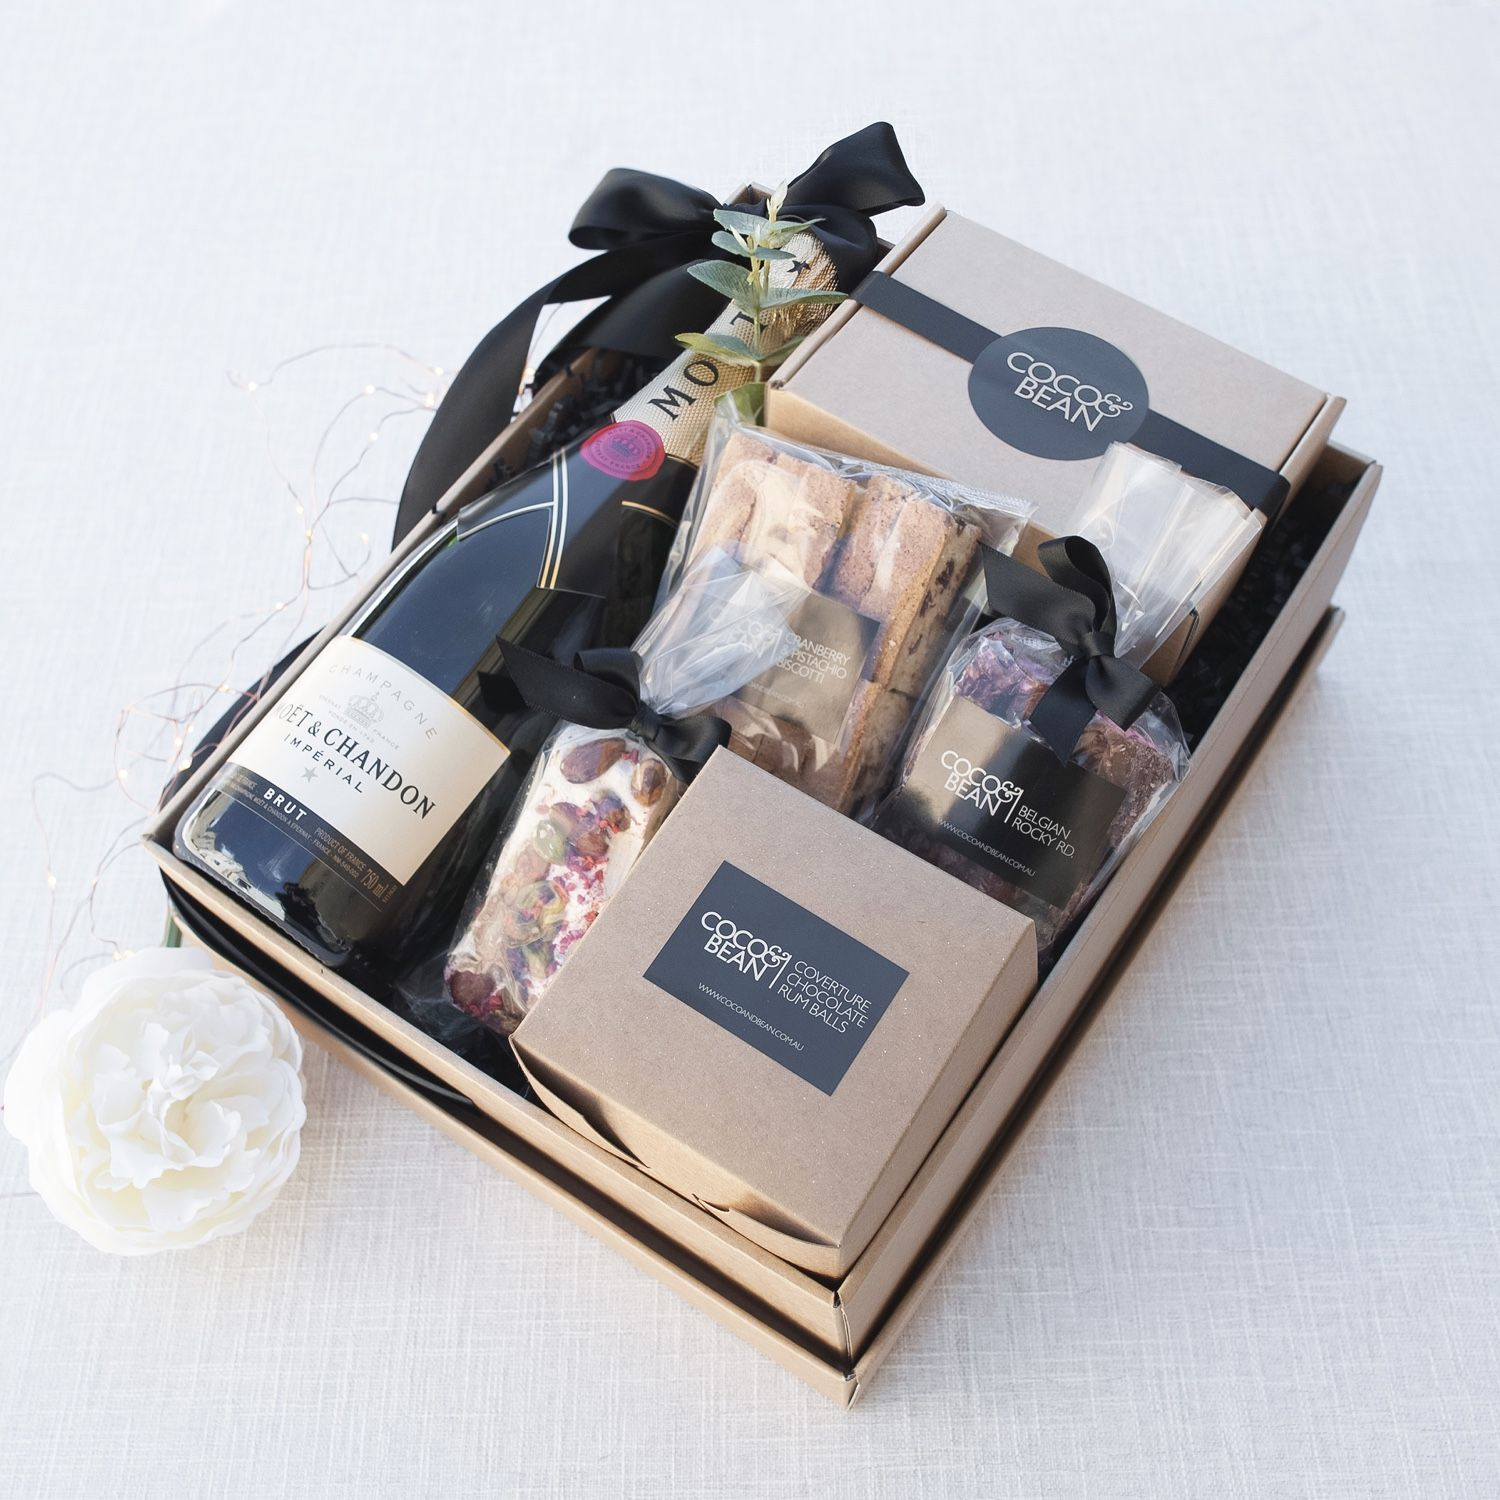 The Luxe Hamper Gourmet Hampers Delivered Free Australia Client Gifts Corporate Gifts Client Gifts Real Estate